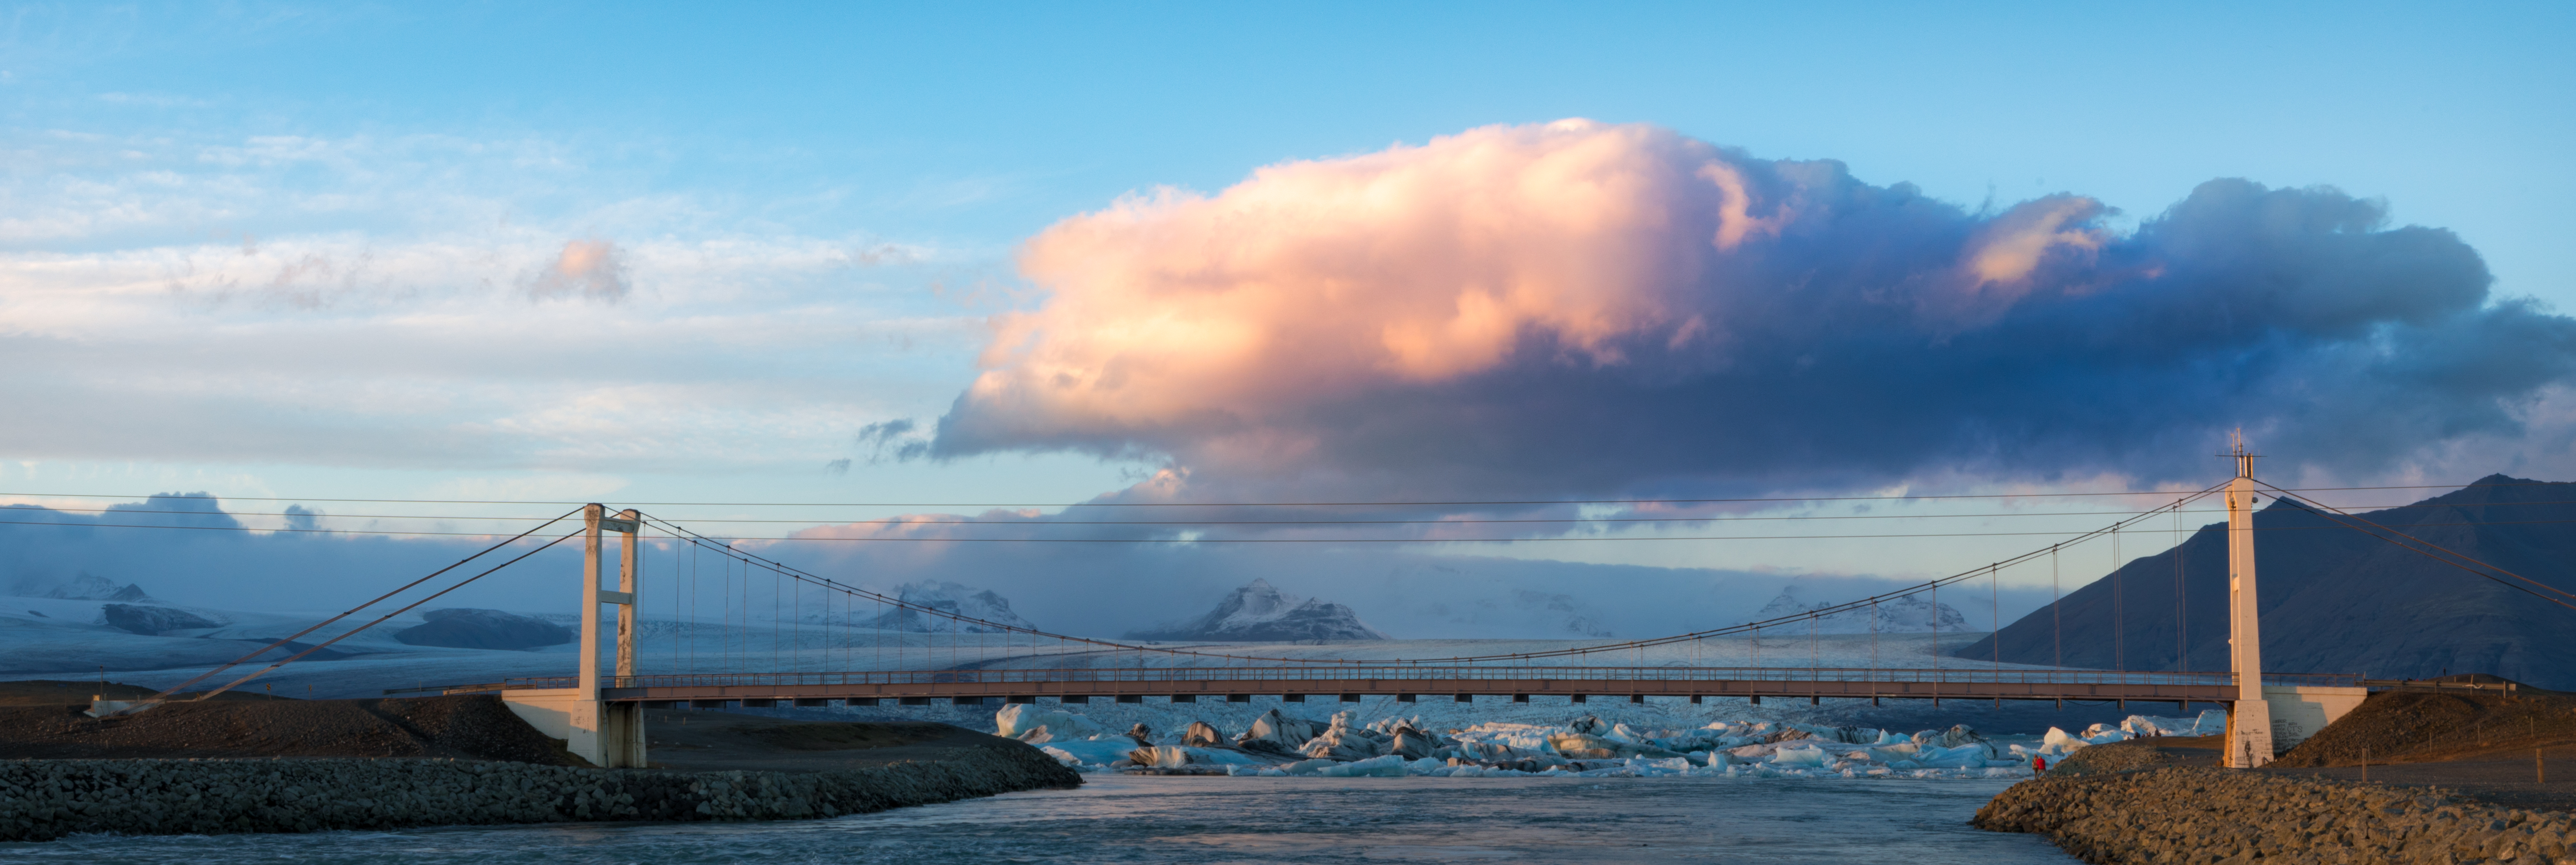 Iceland's Ring Road crosses many river and inlets. This one lane bridge spans the inlet near the Iceberg Laggon.